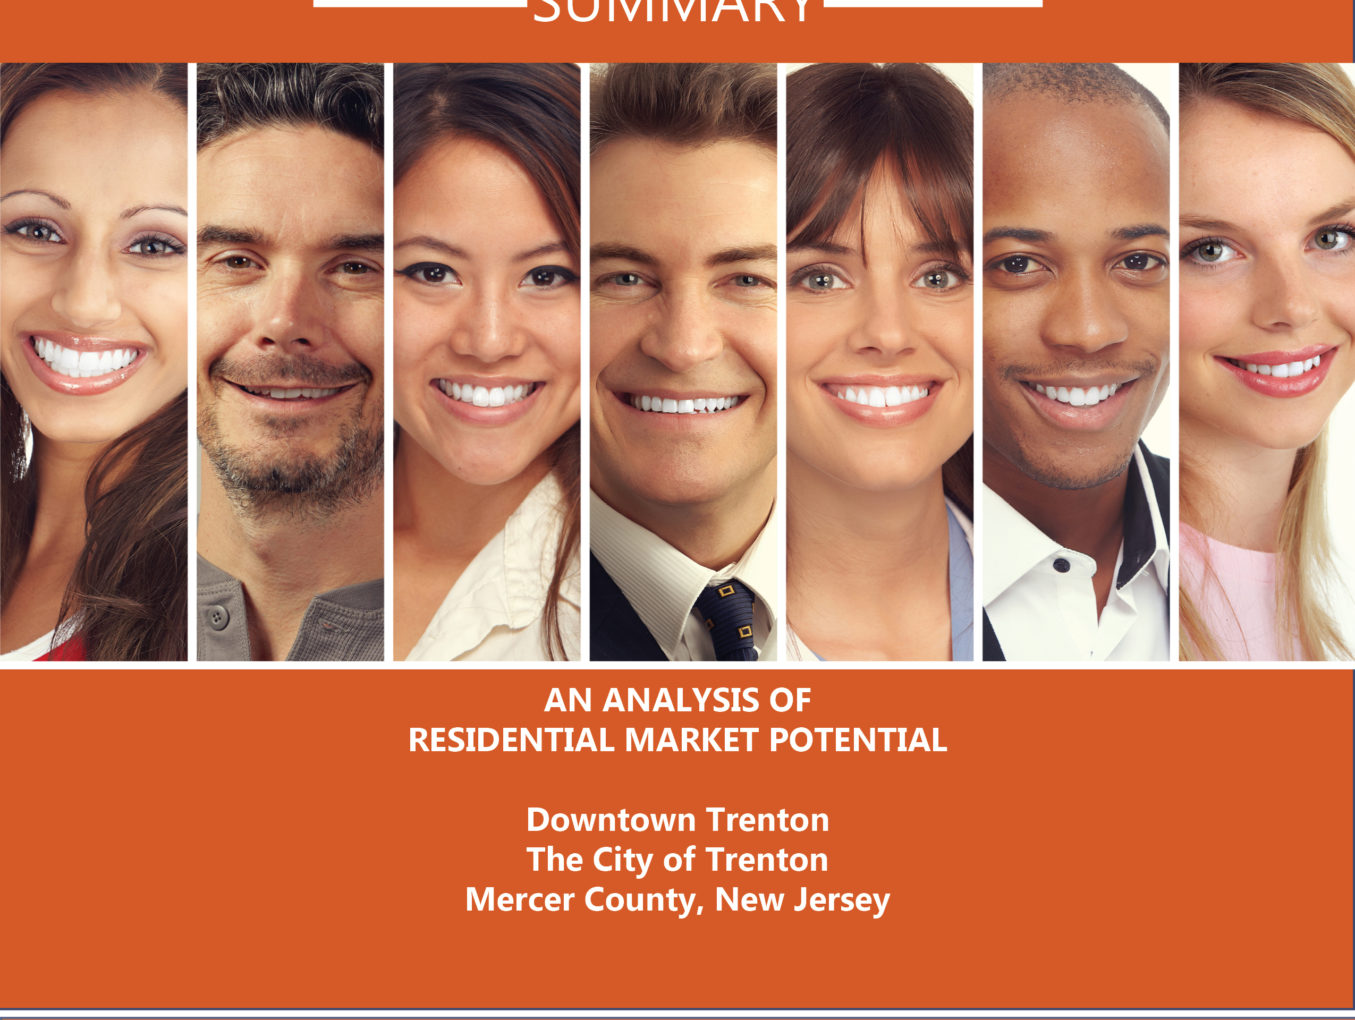 GREATER TRENTON RELEASES RESIDENTIAL MARKET STUDY REVEALING DEMAND FOR UP TO 760 HOUSING UNITS IN DOWNTOWN TRENTON